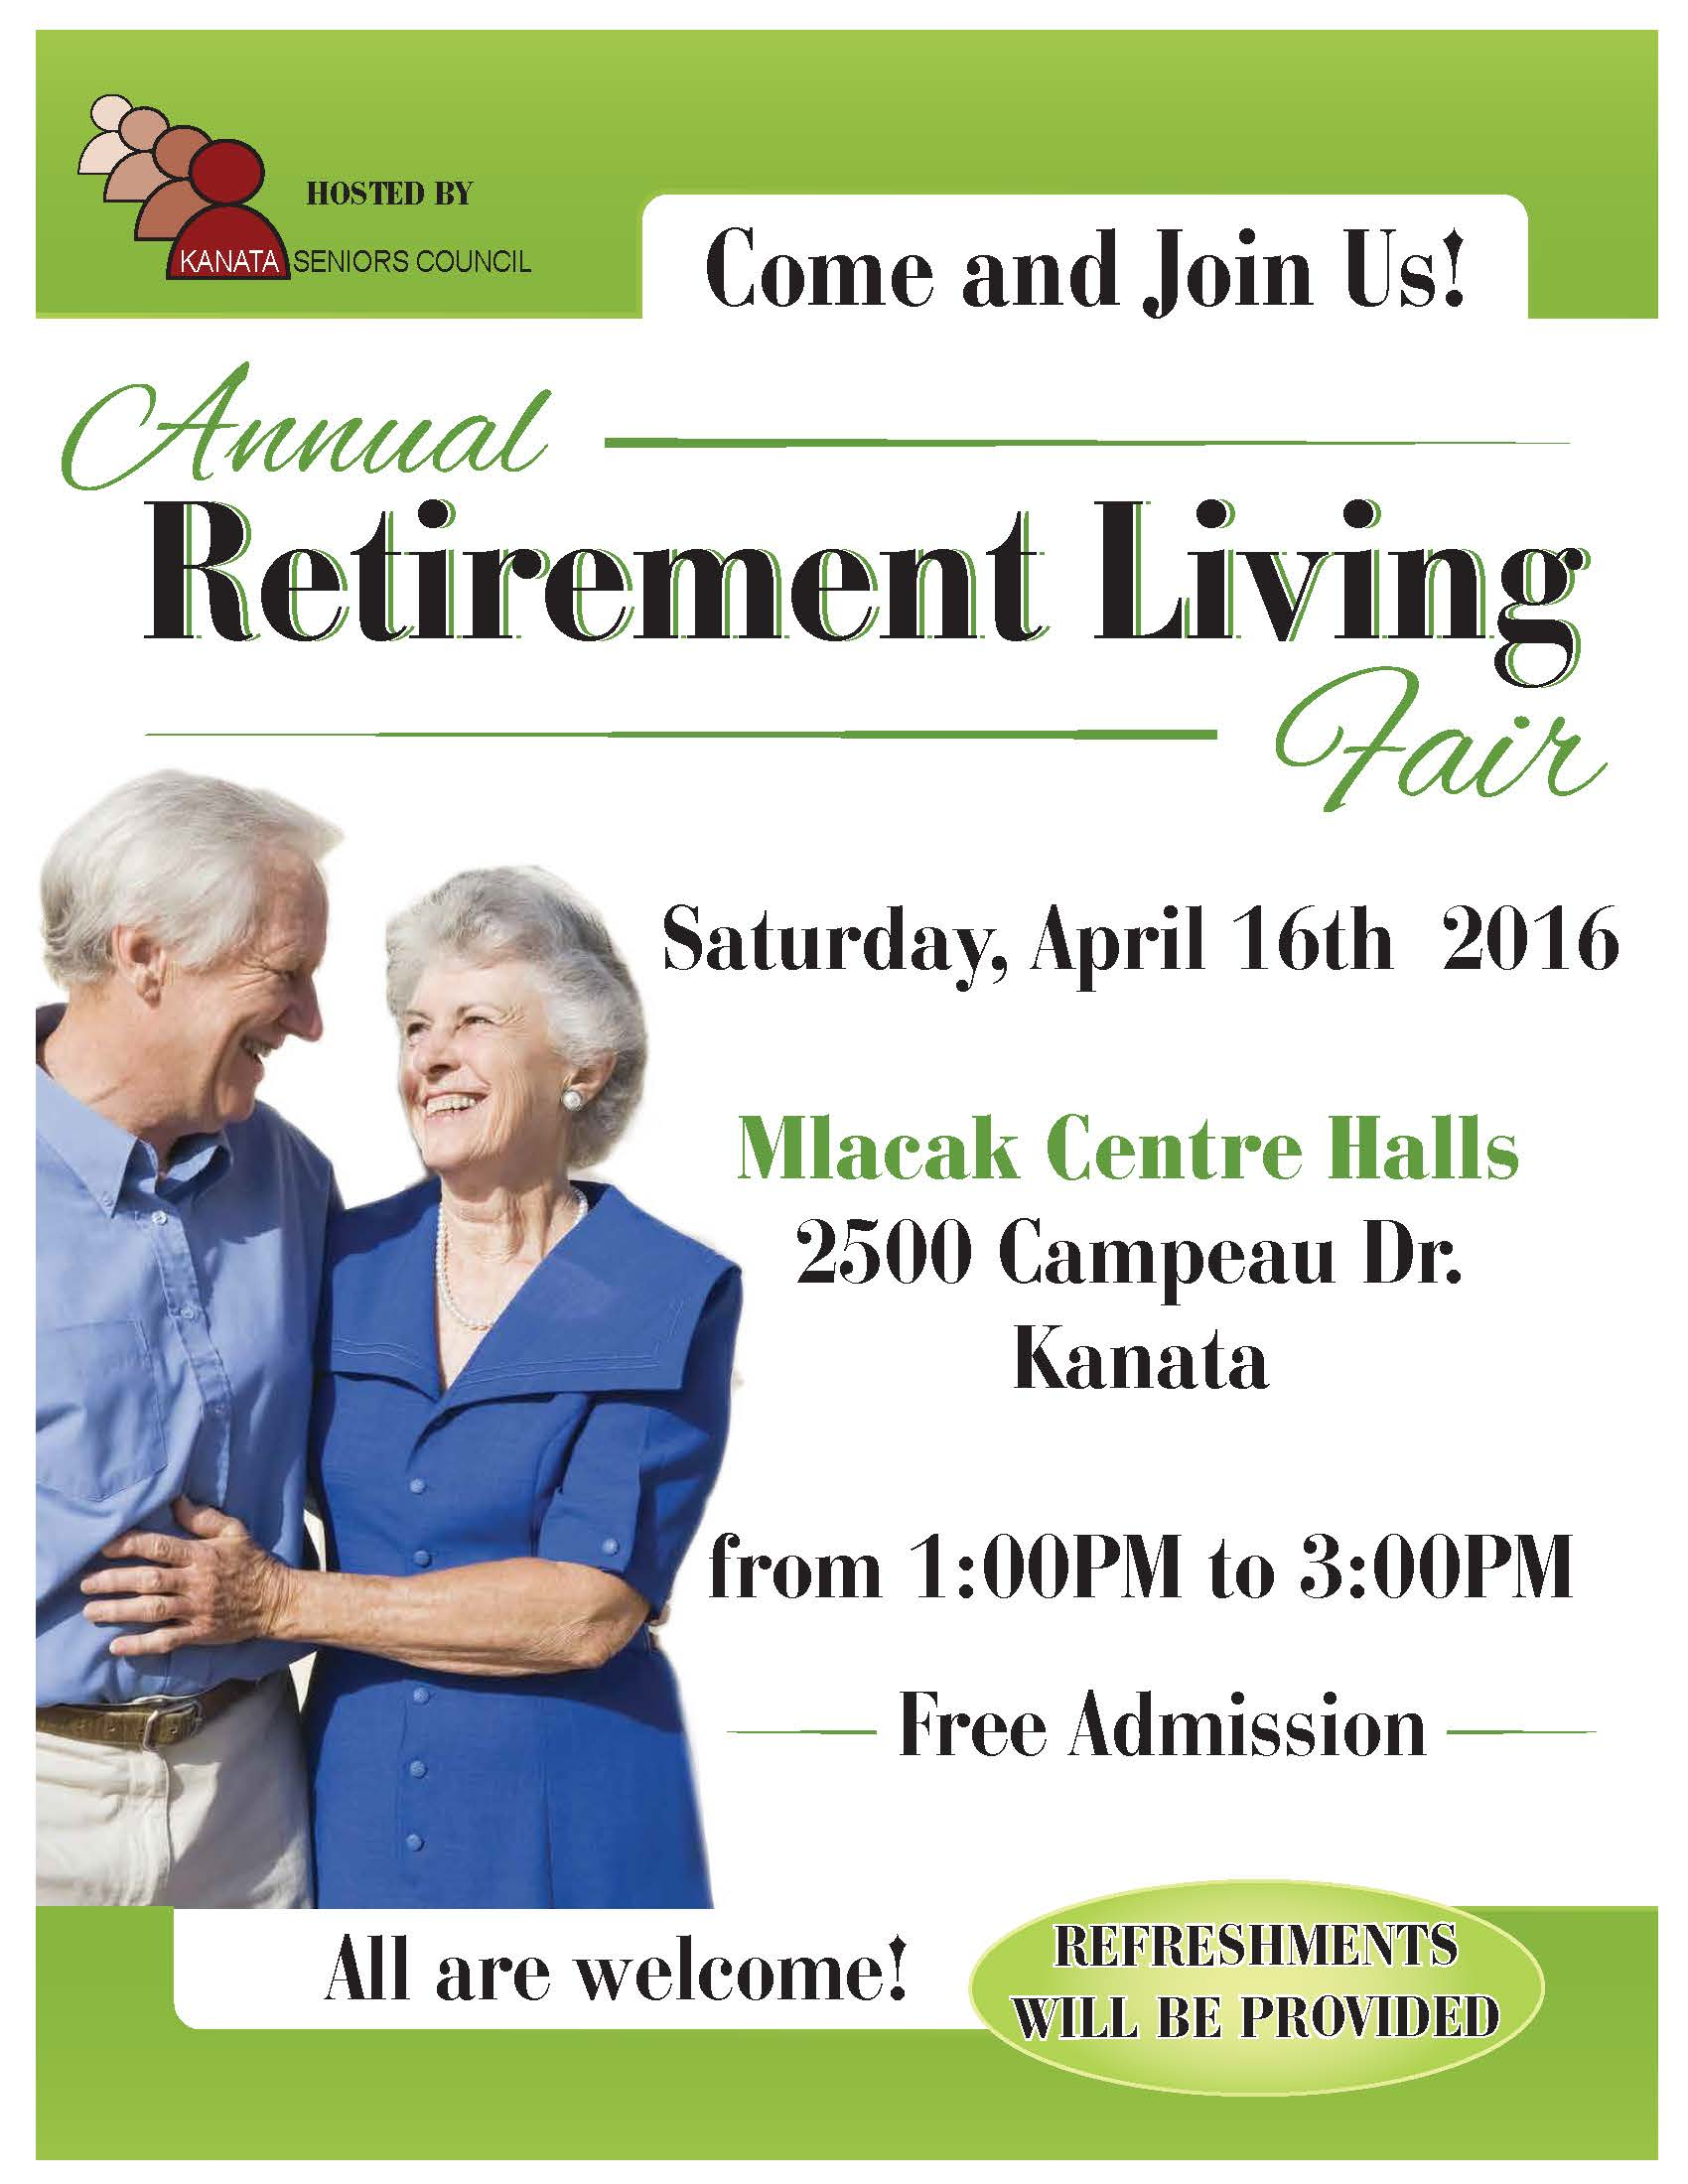 K. Turner Transitions will be a participant at the Retirement Living fair on April 16th, 2016. Hope to see you there !